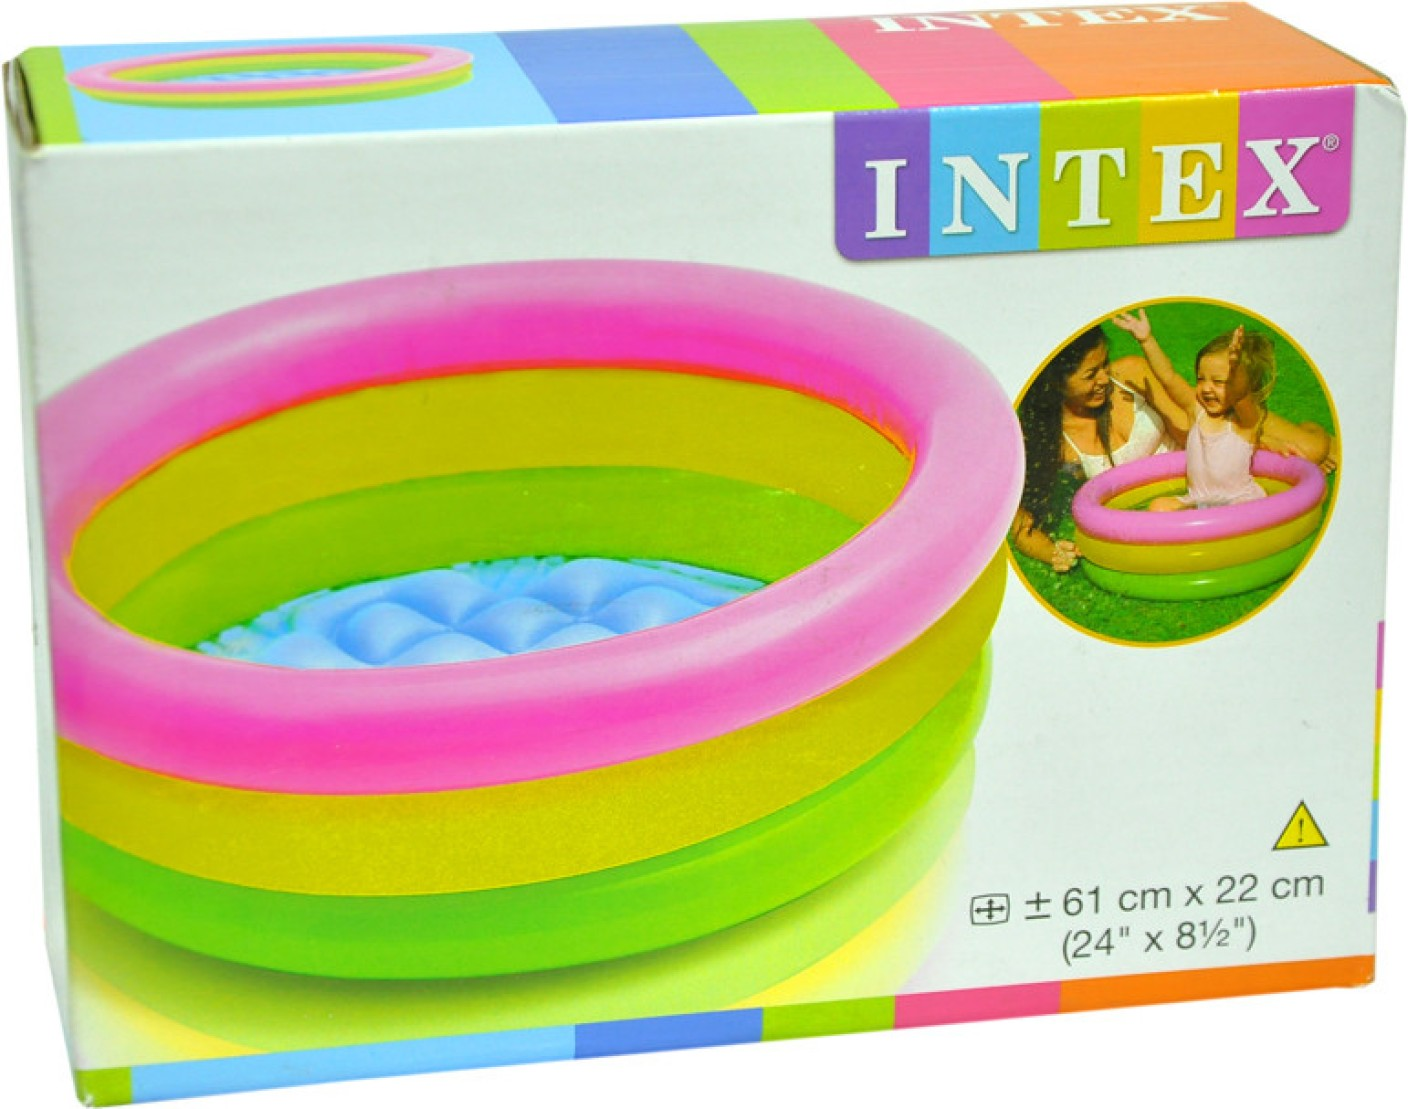 Intex Water Tub Inflatable Pool 2ft Diameter Baby Bath Seat Price In India Buy Intex Water Tub